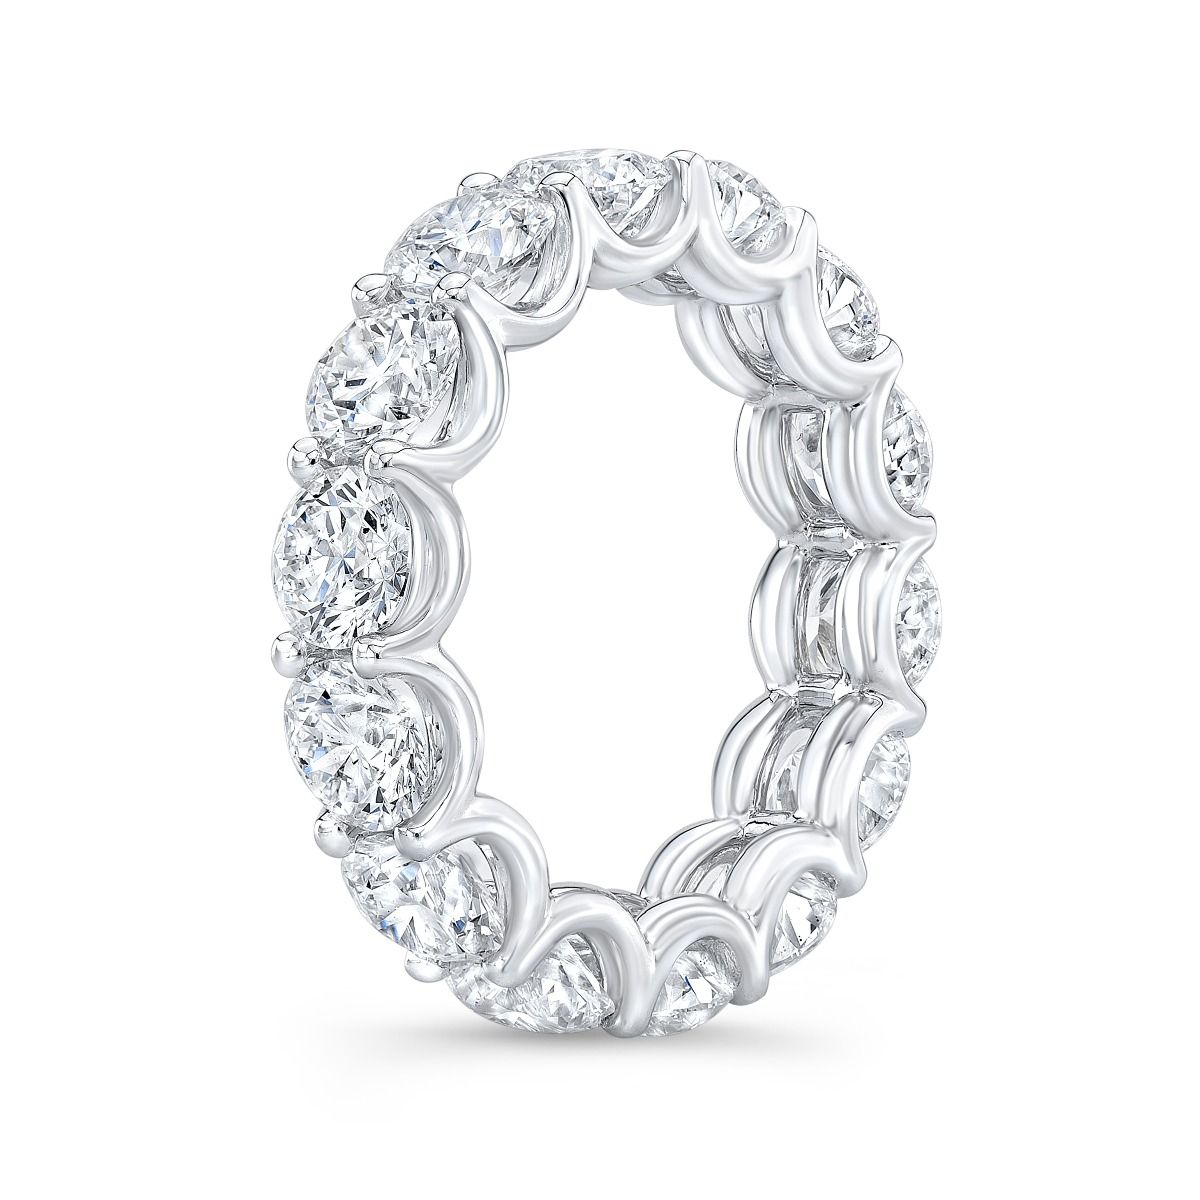 7 Carat Ladies Eternity Ring With Round Cut Diamonds GIA Certified